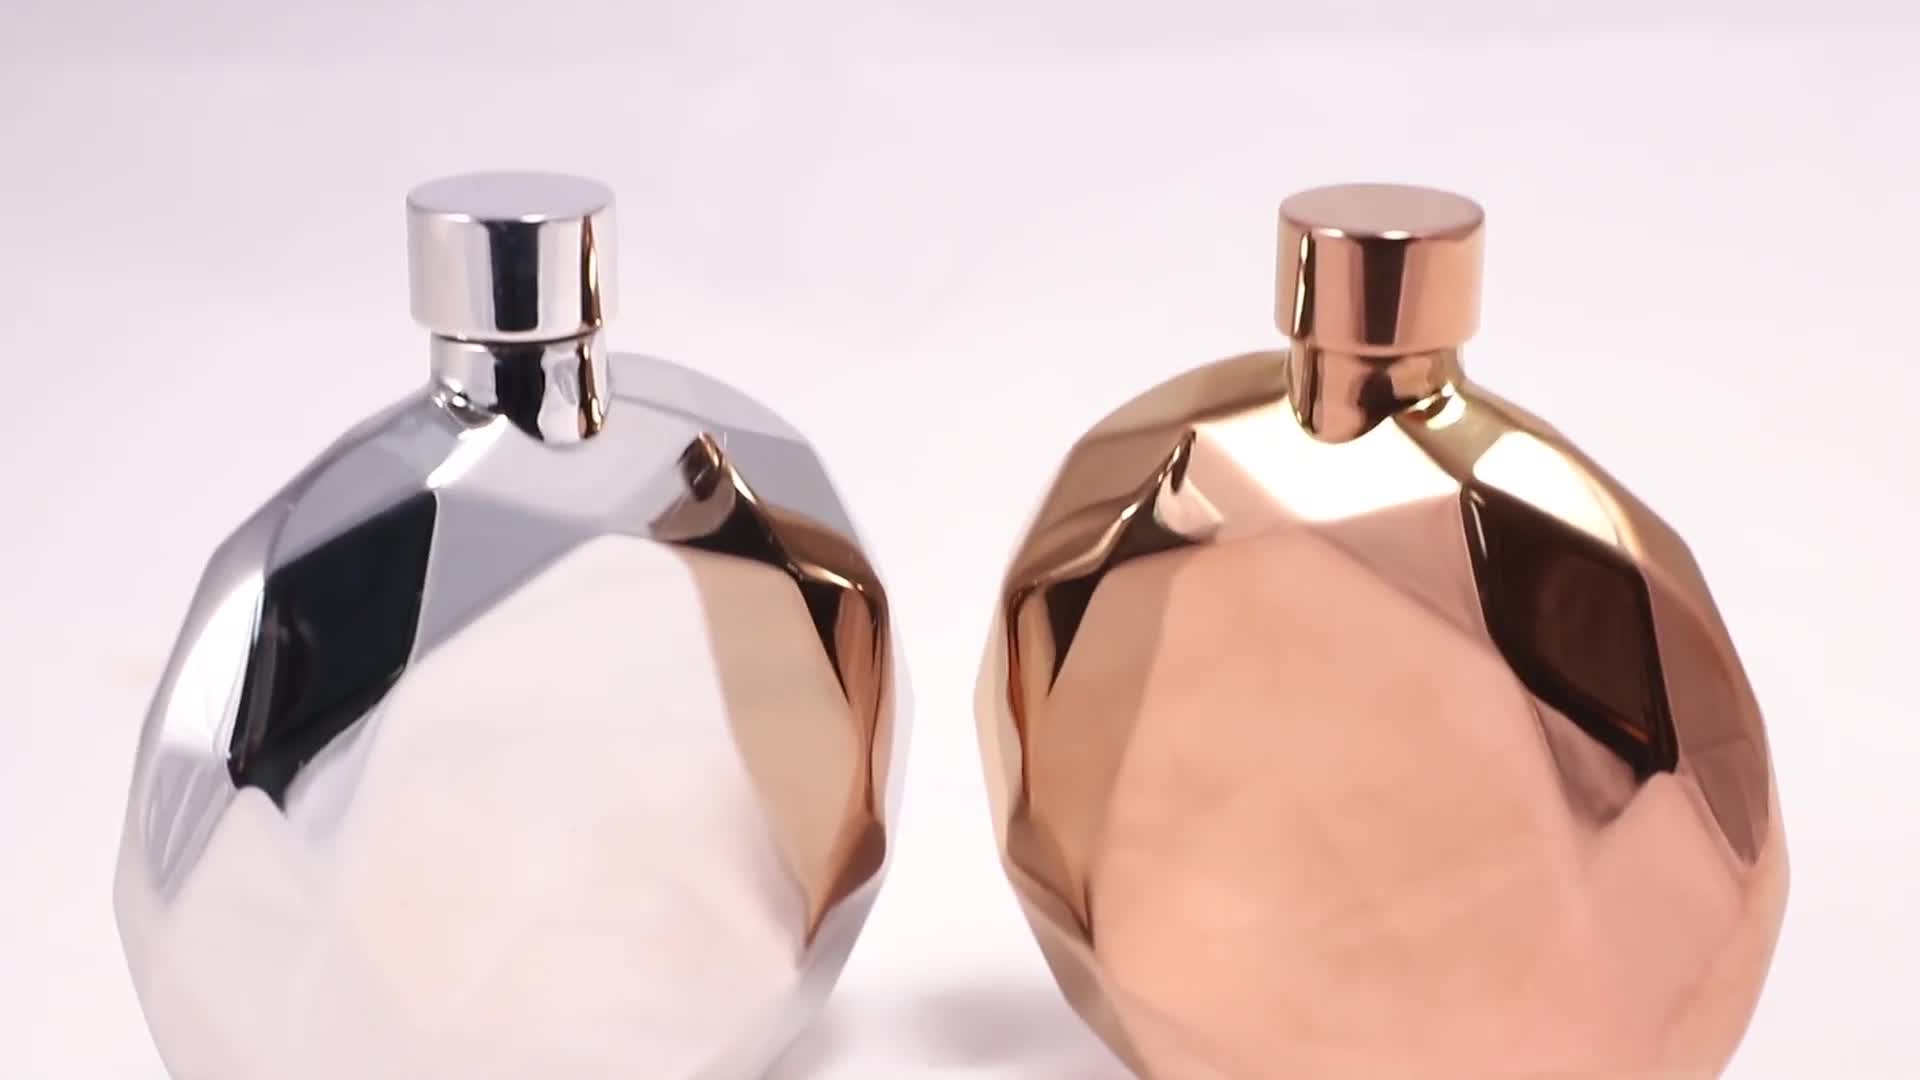 Top Quality 7oz Stainless Steel Soft Touch Rubber Paint Hip Flask Set